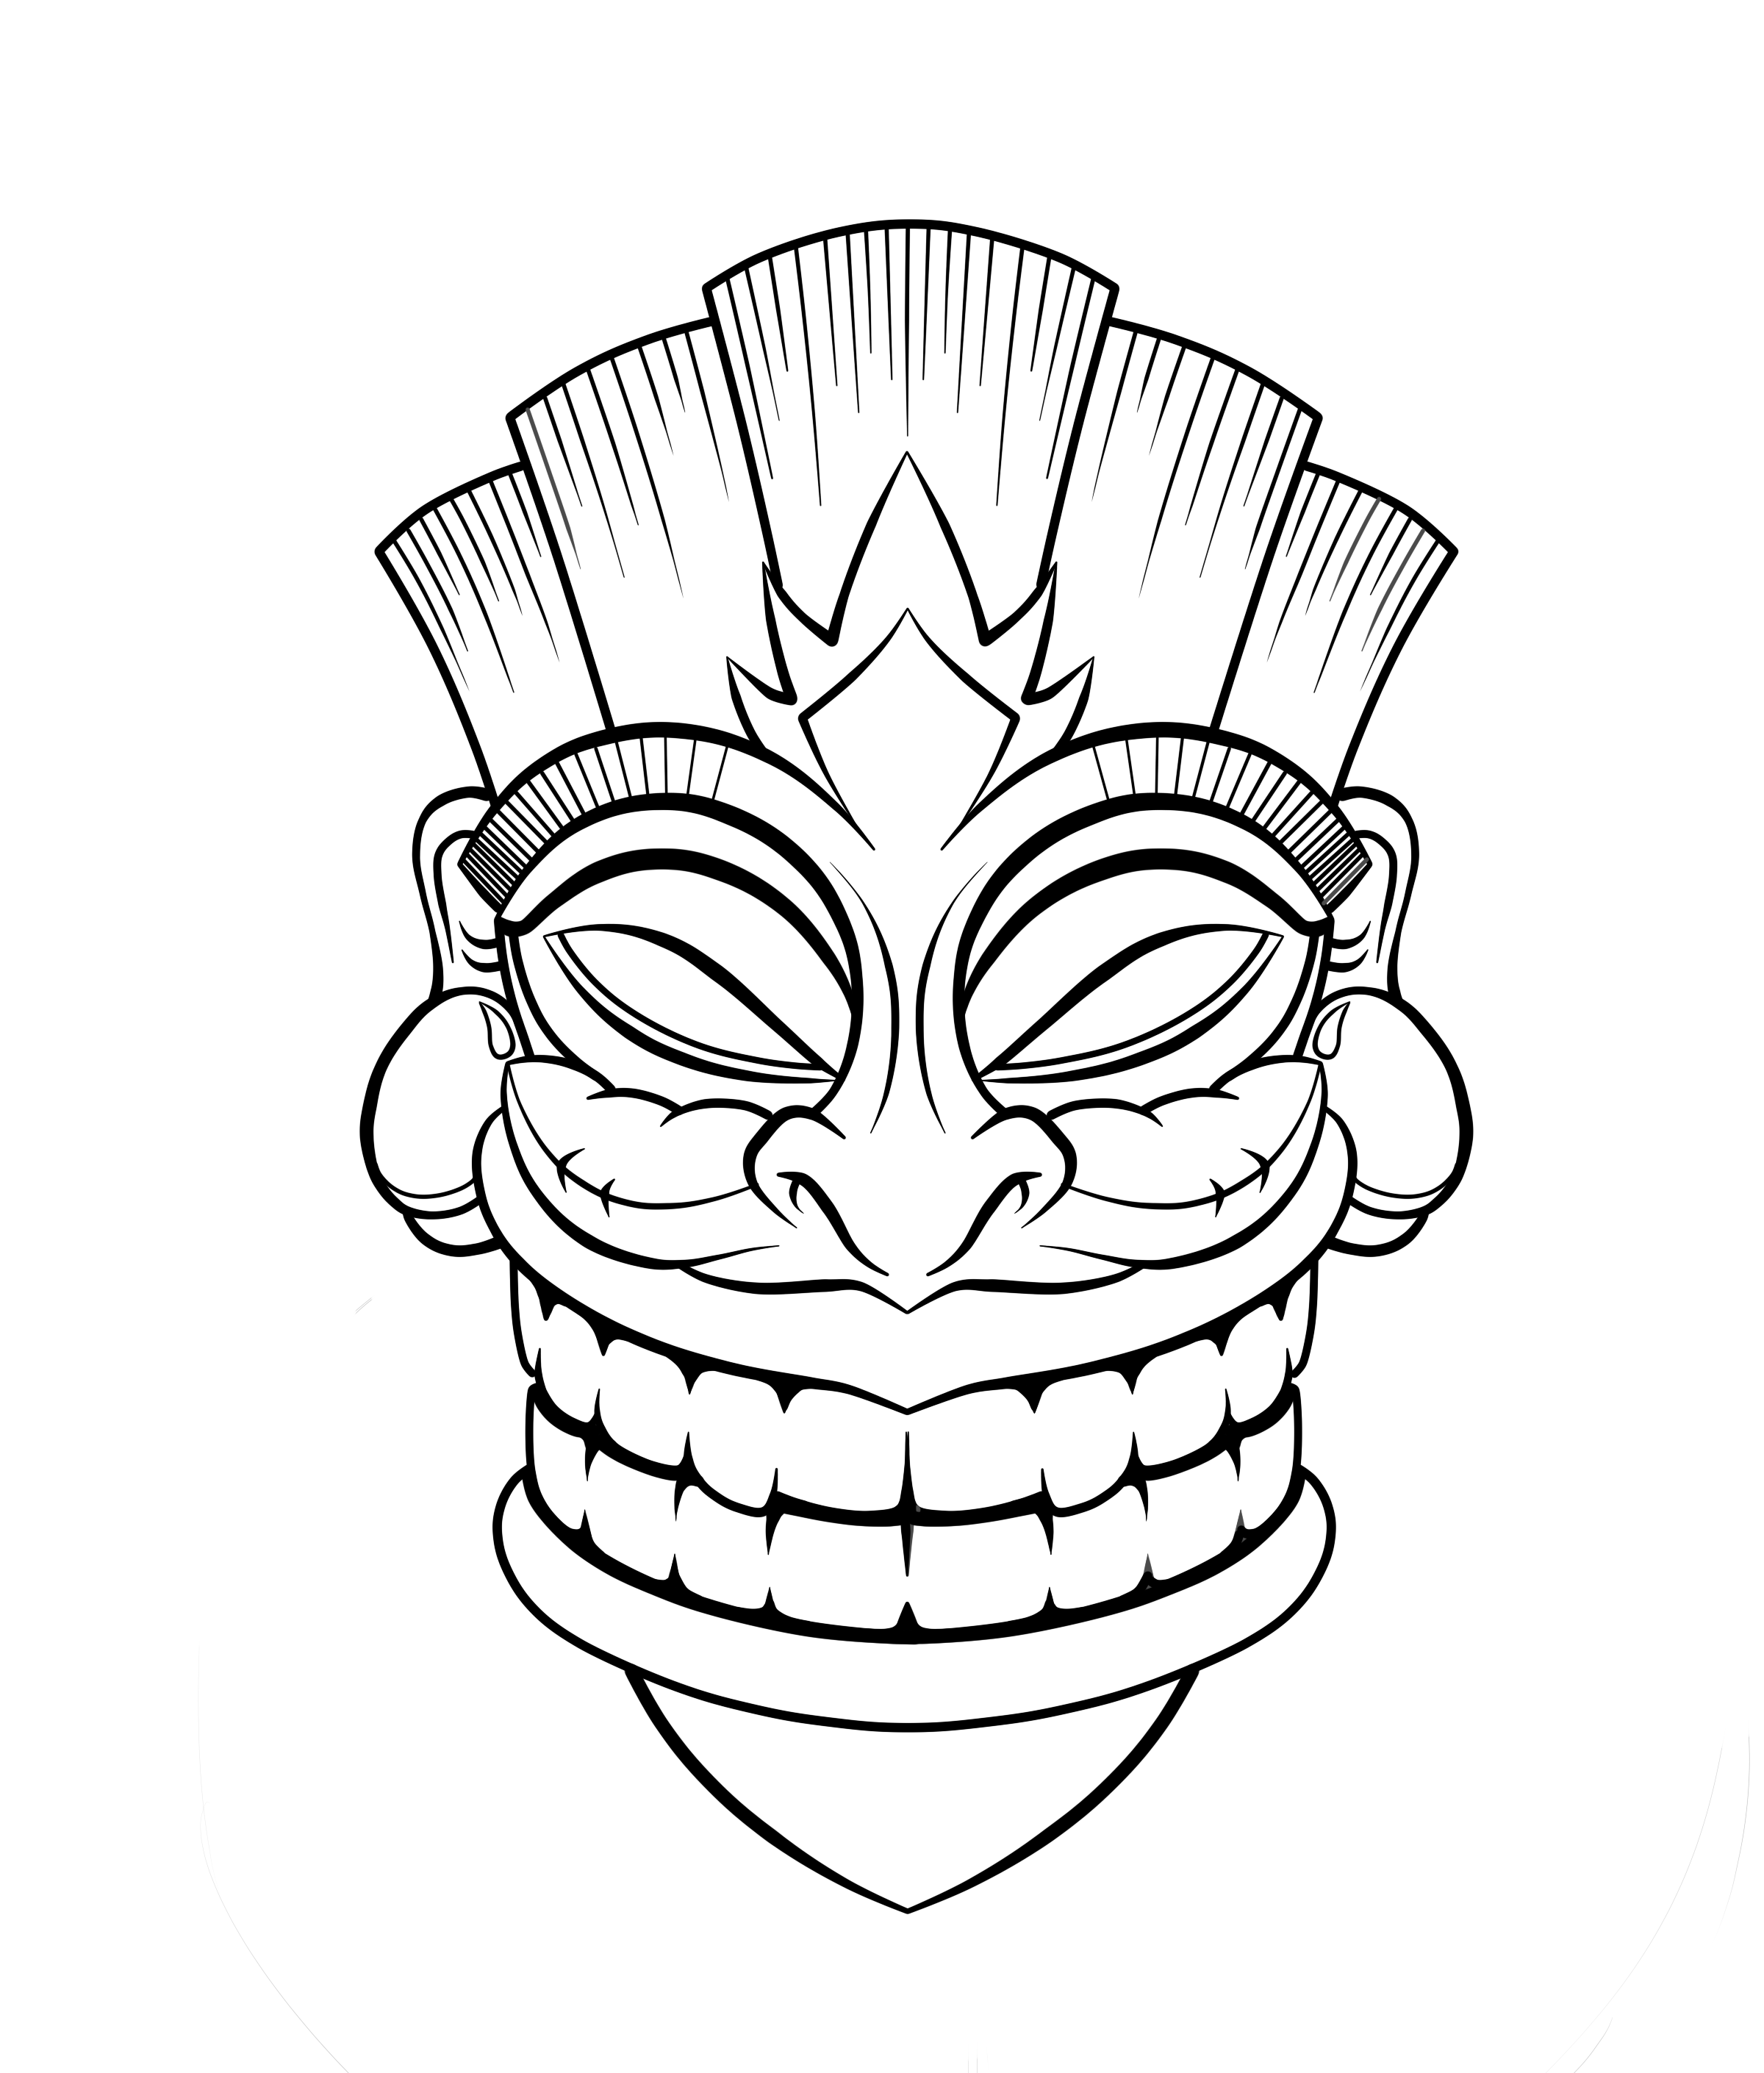 Hawaiian Tiki Mask Coloring Pages Download And Print For Free